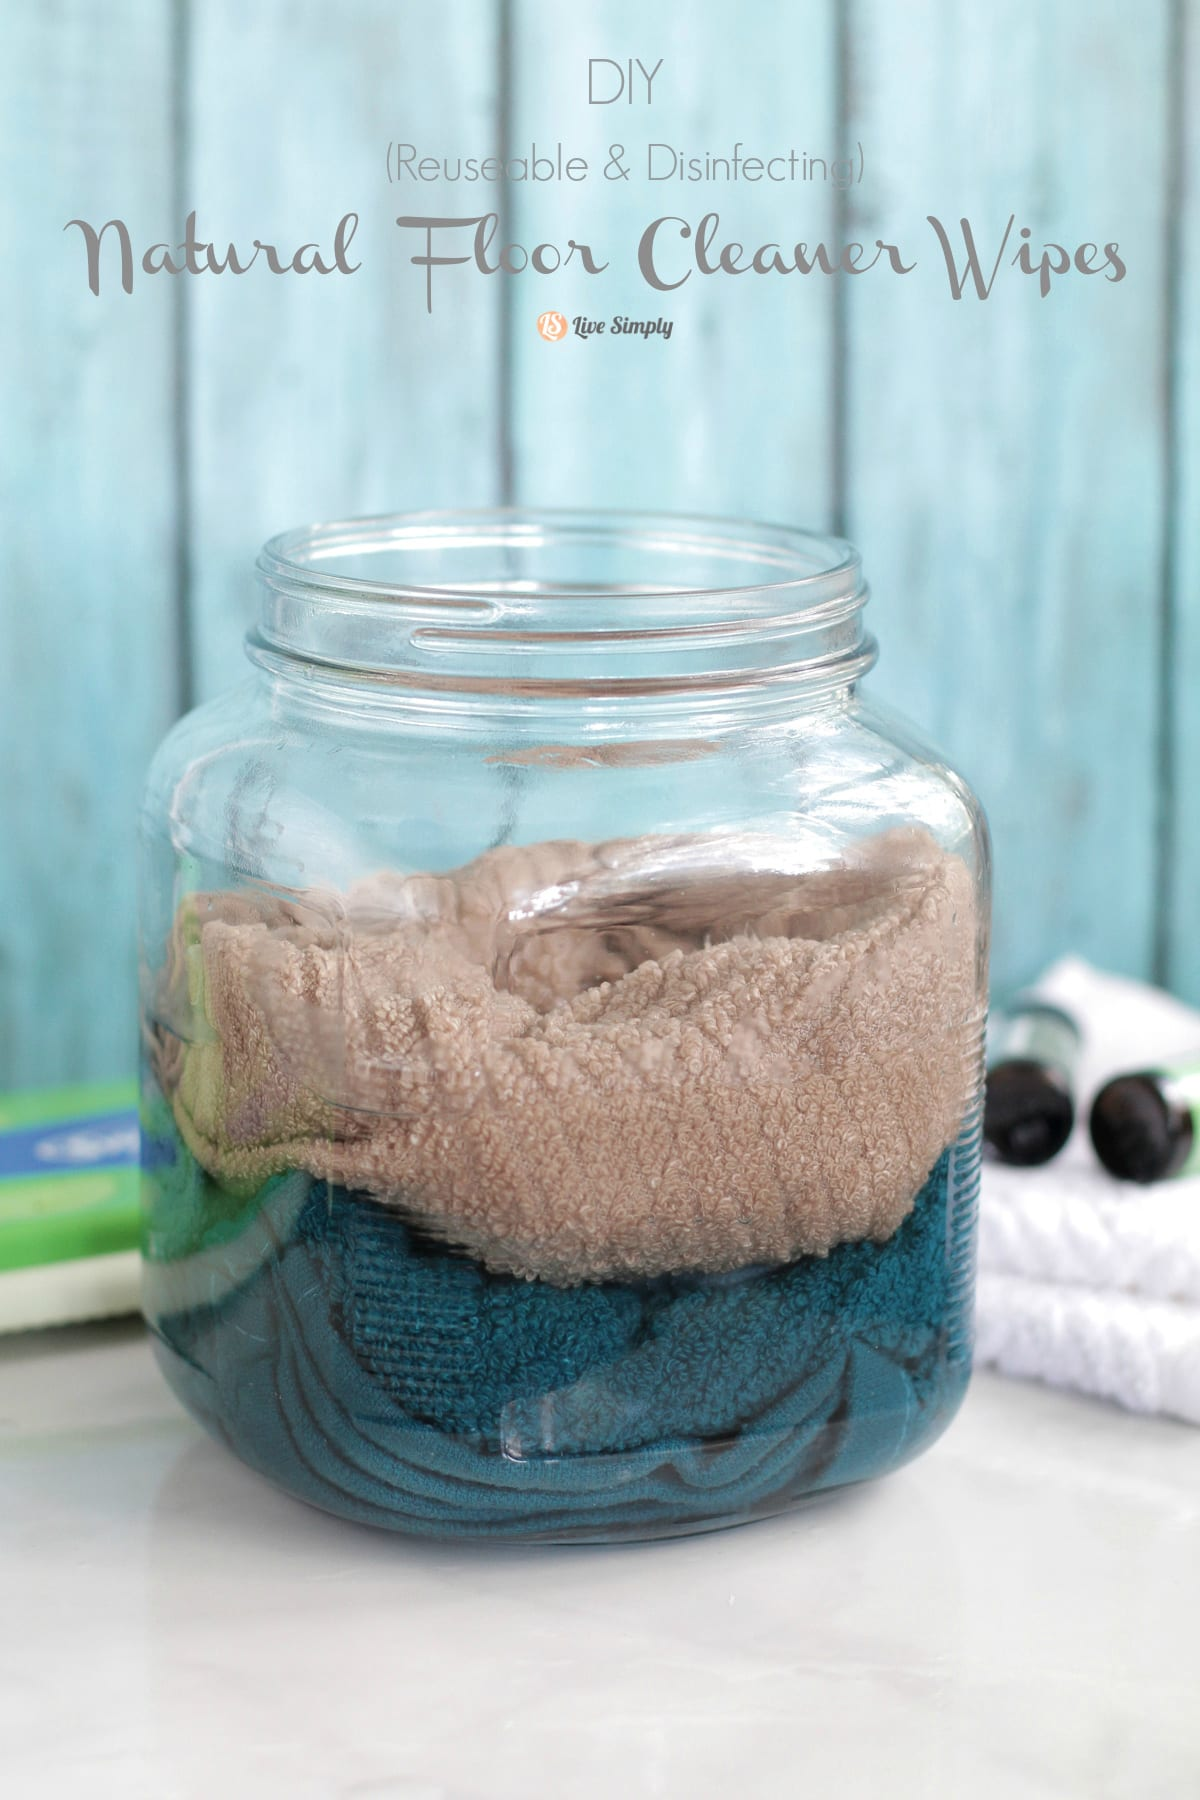 DIY natural floor cleaner wipes made for a Swiffer! Only a few natural - DIY Natural Floor Cleaner Wipes - Live Simply